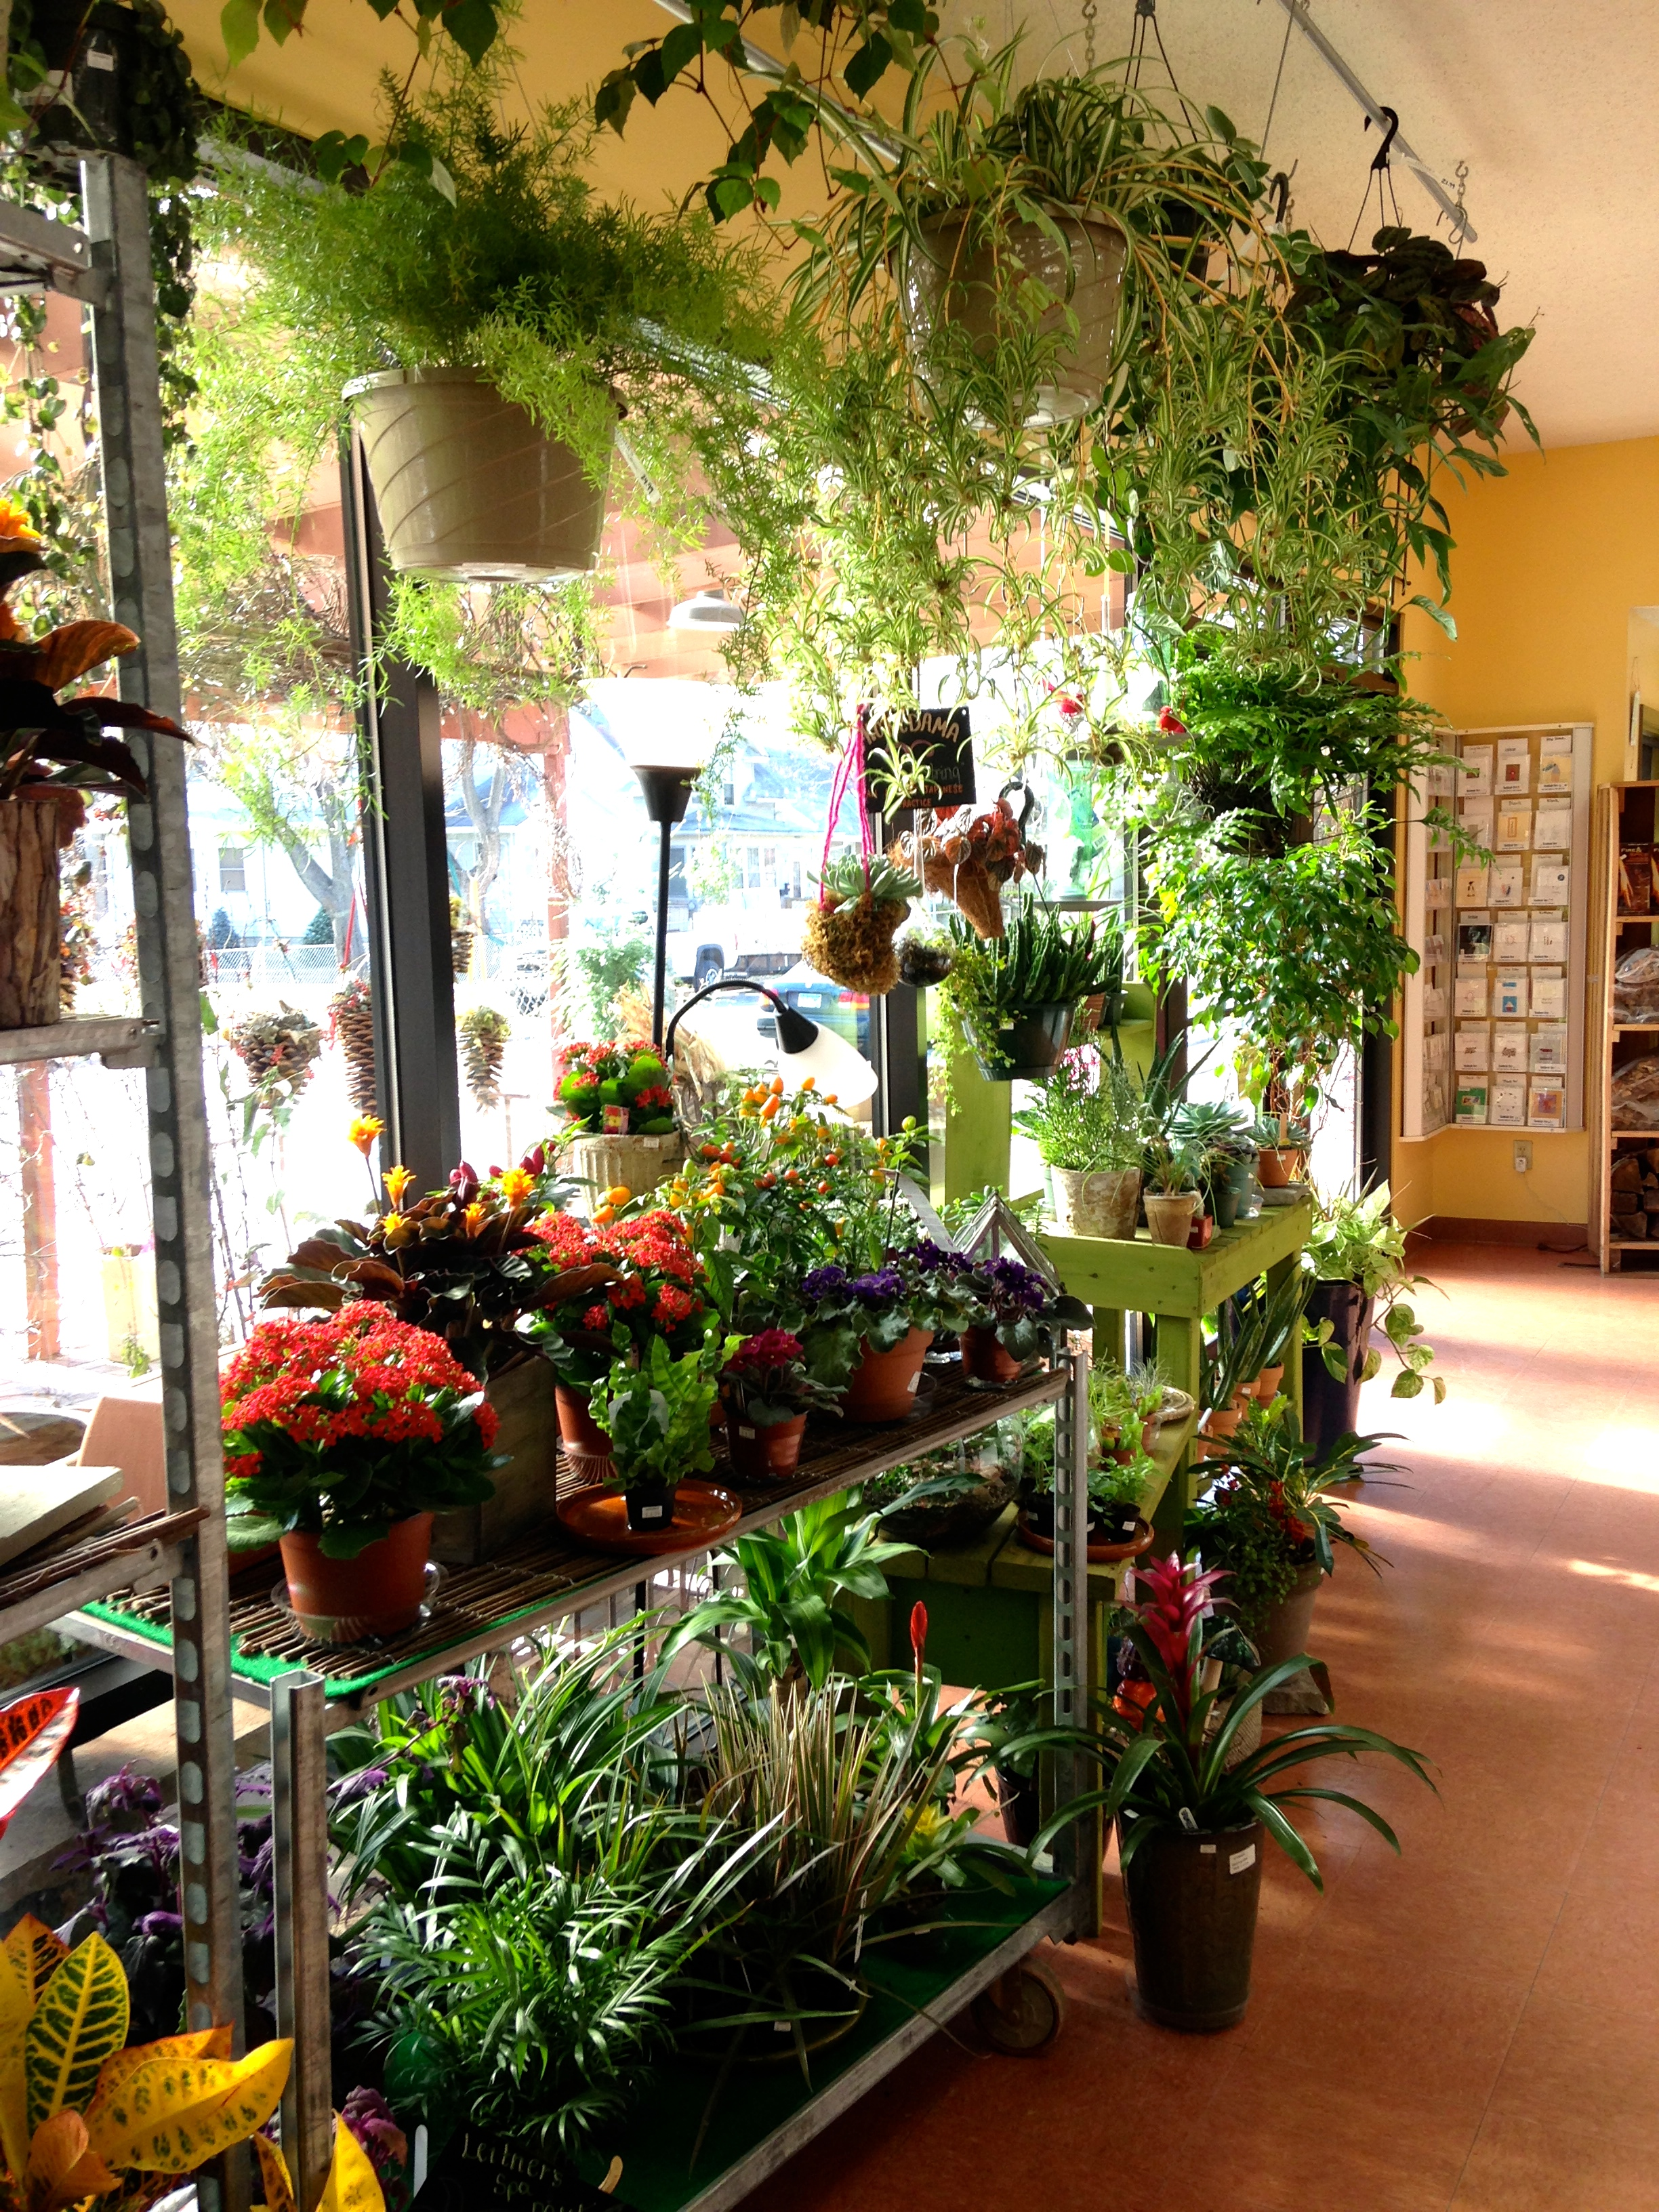 Check out our Houseplant Section!